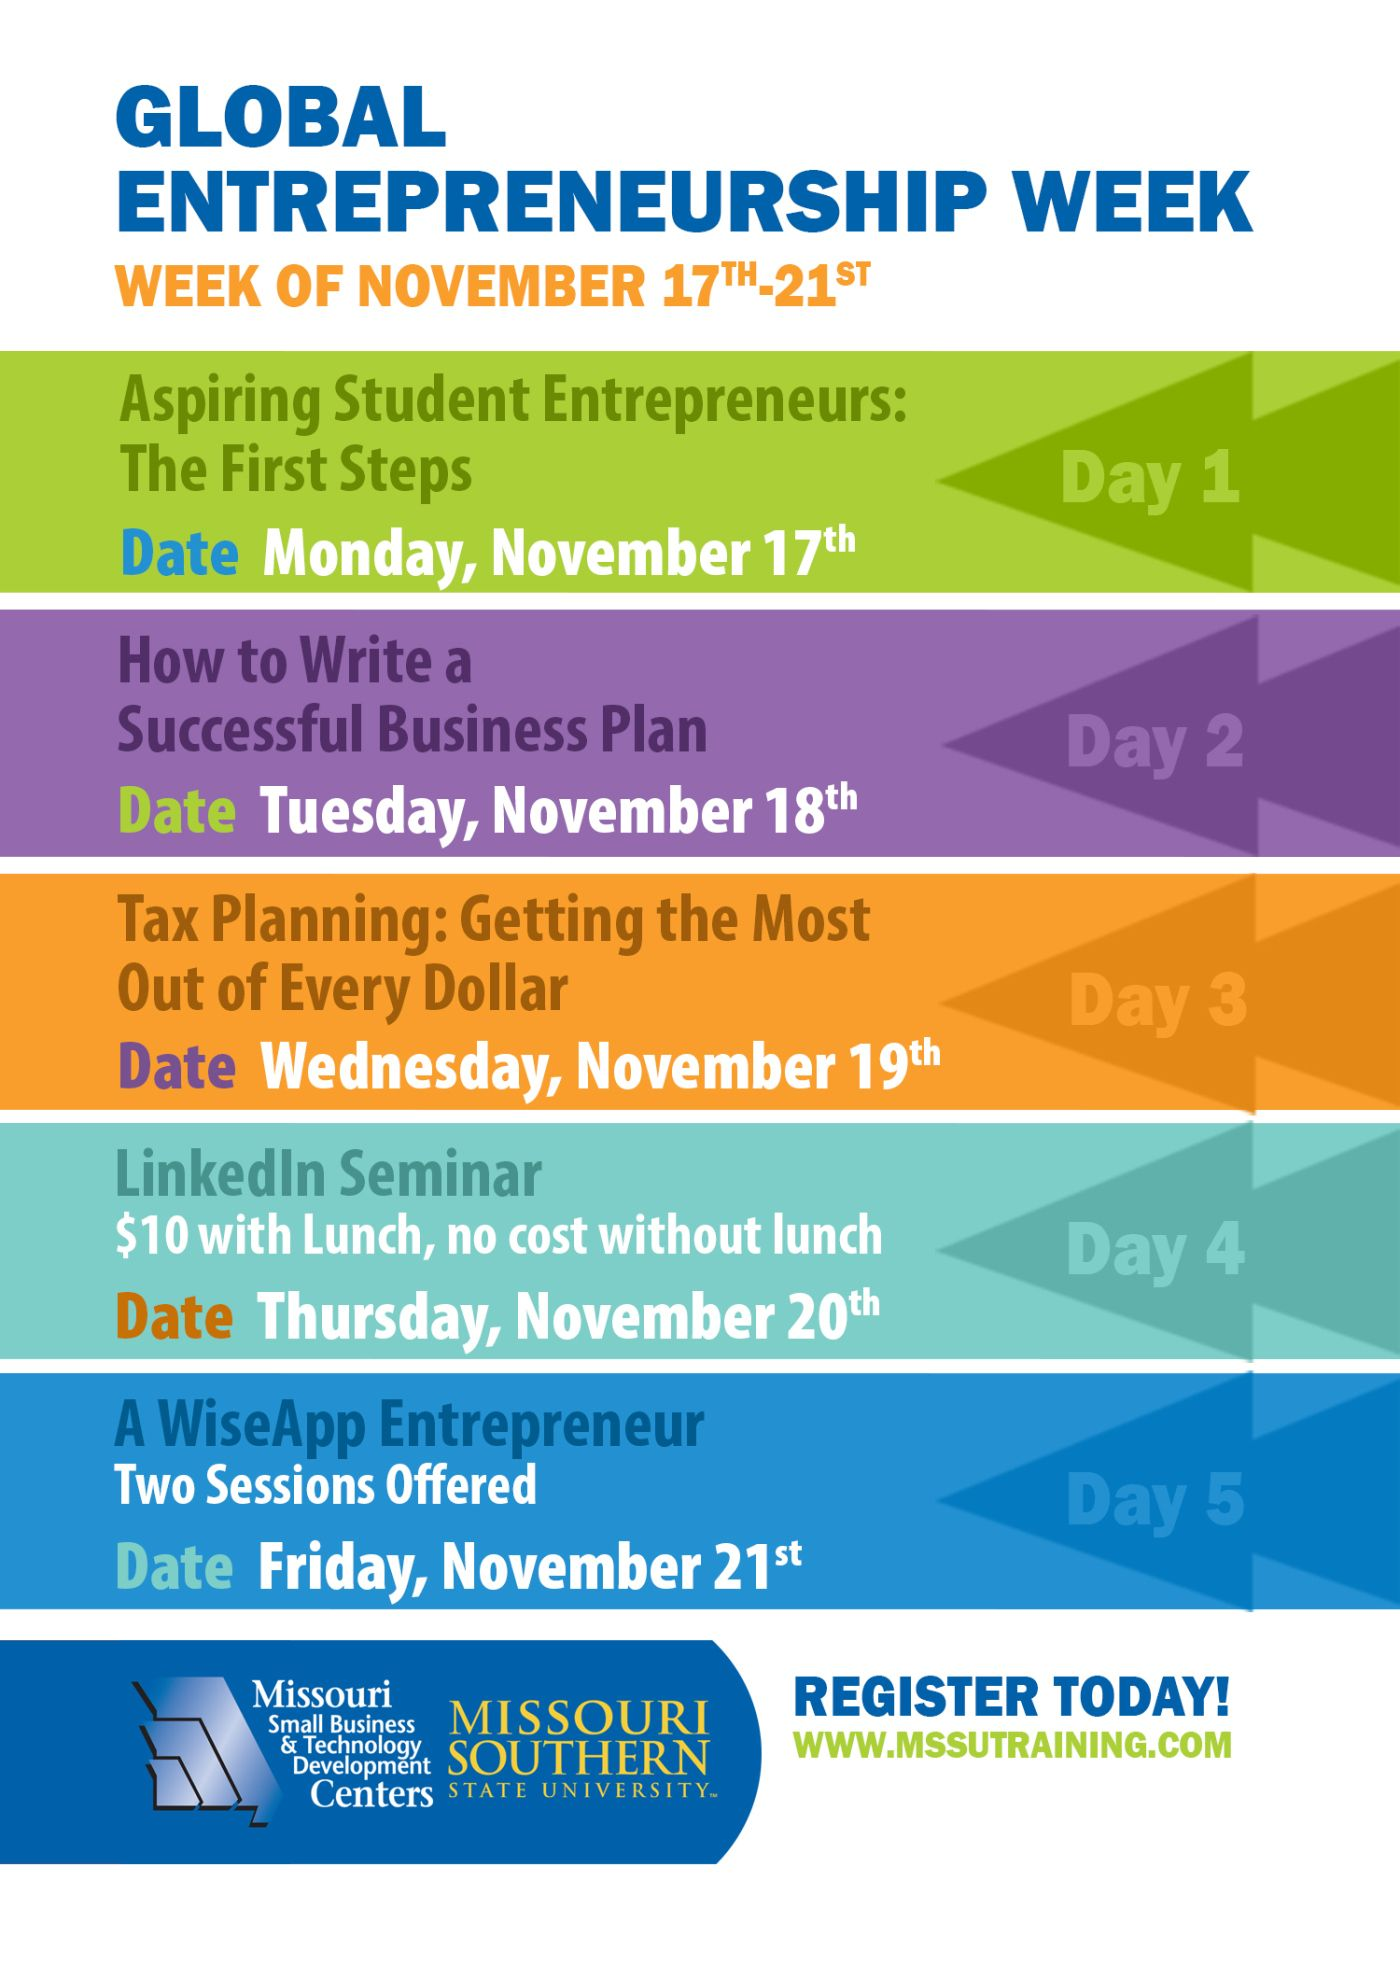 Global Entrepreneurship Week Events Flyer  Google Search  Small